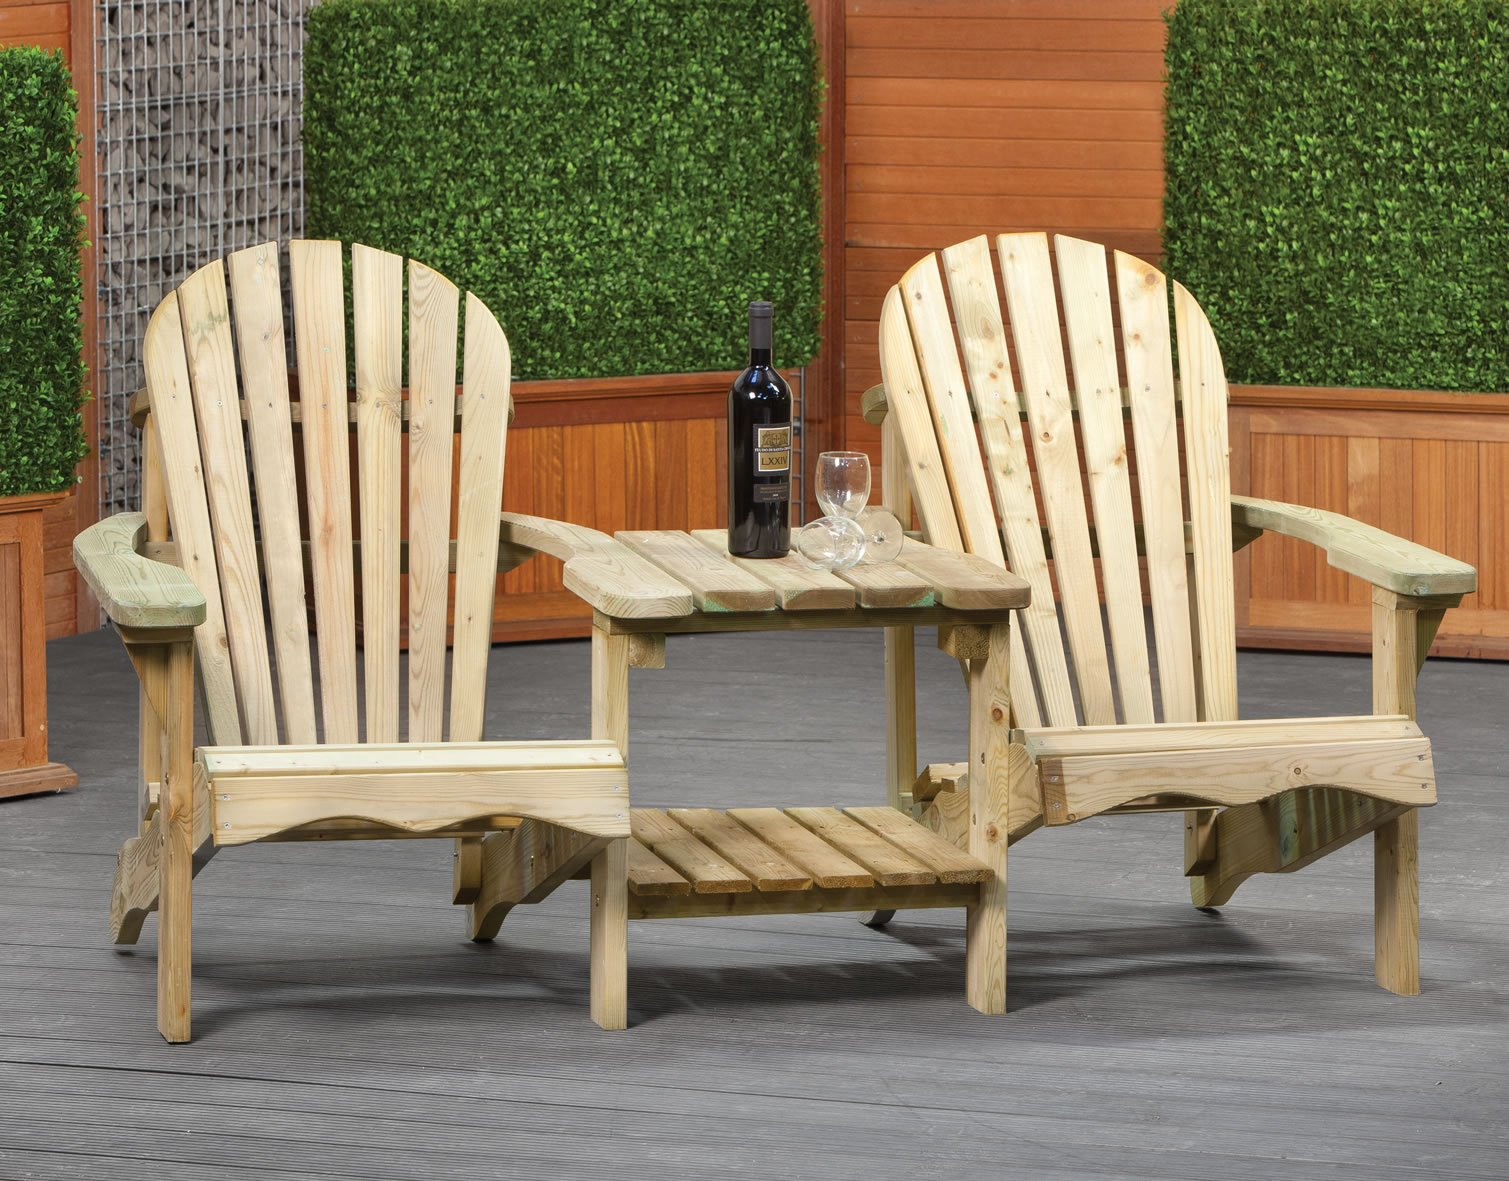 Adirondack love seat paris love seat for Garden love seat uk